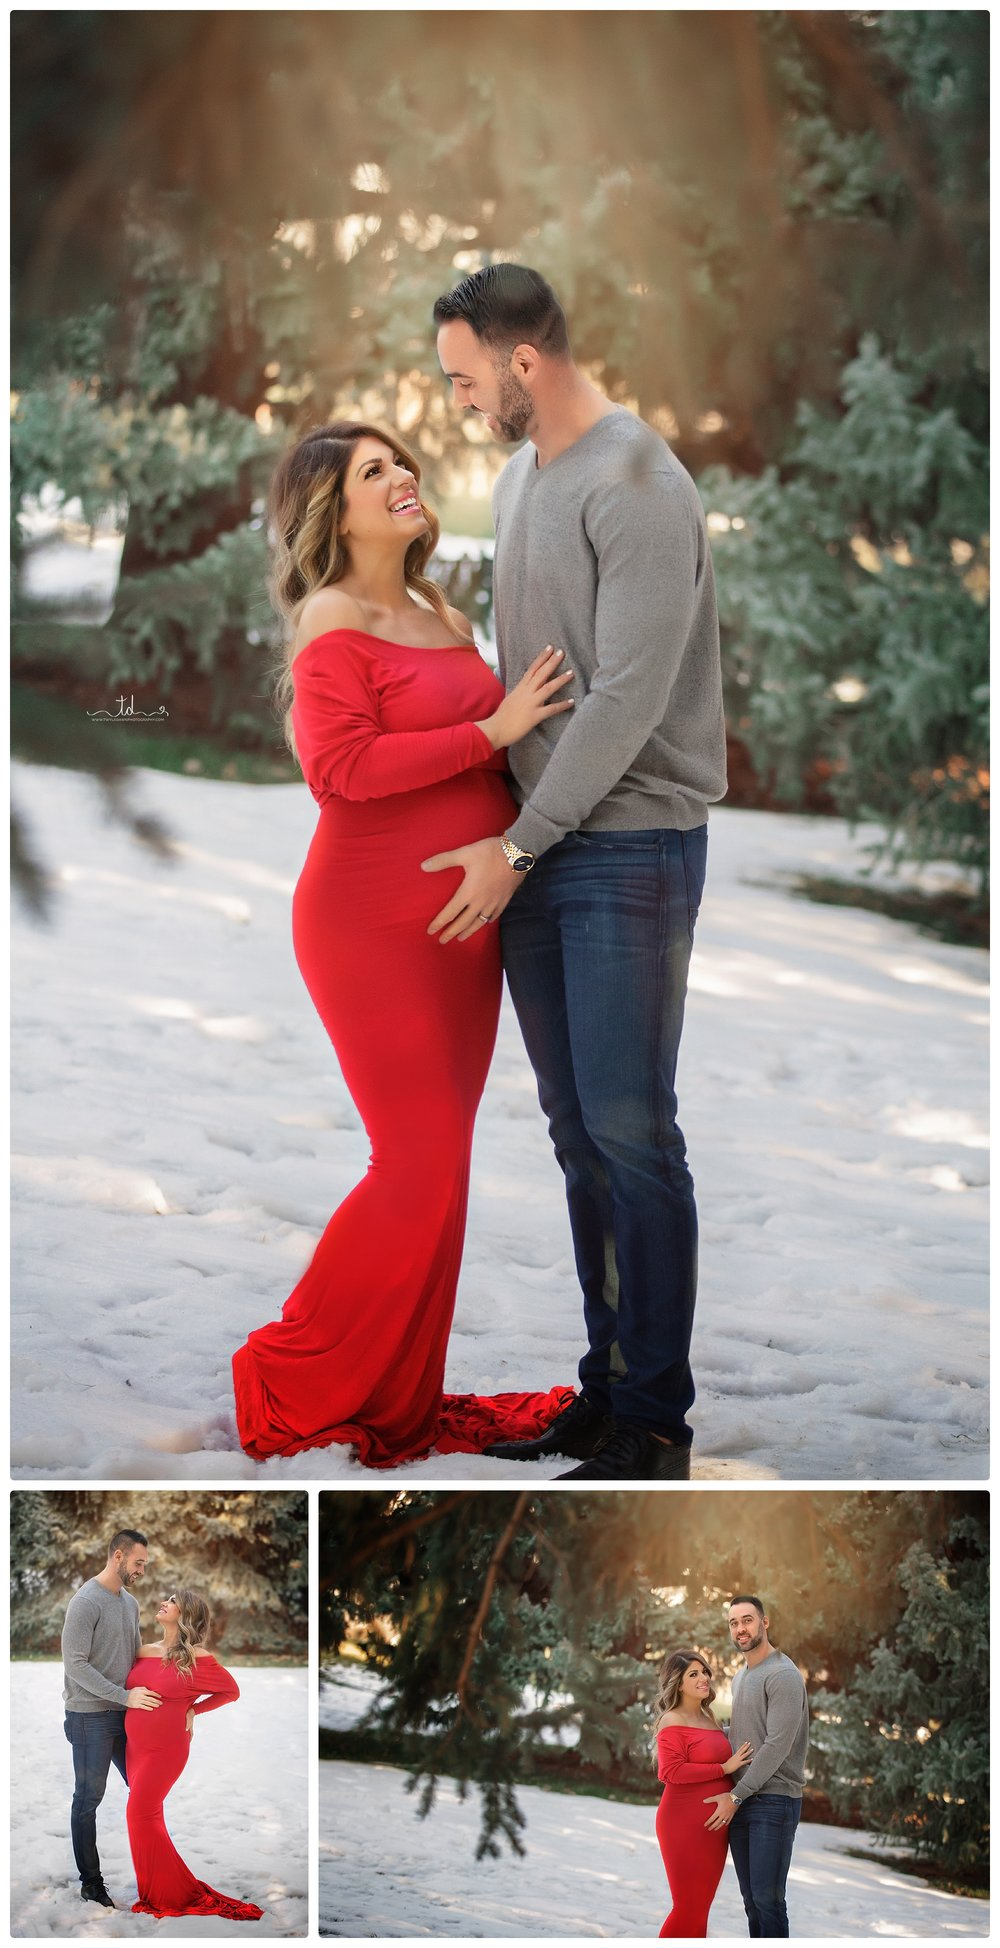 Nineveh Maternity Session | Utah Maternity photographer | Utah pregnancy photography | Salt Lake City Maternity Photographer | Park City Winter Maternity Portraits | Winter pregnancy pics #twyladawnphotography